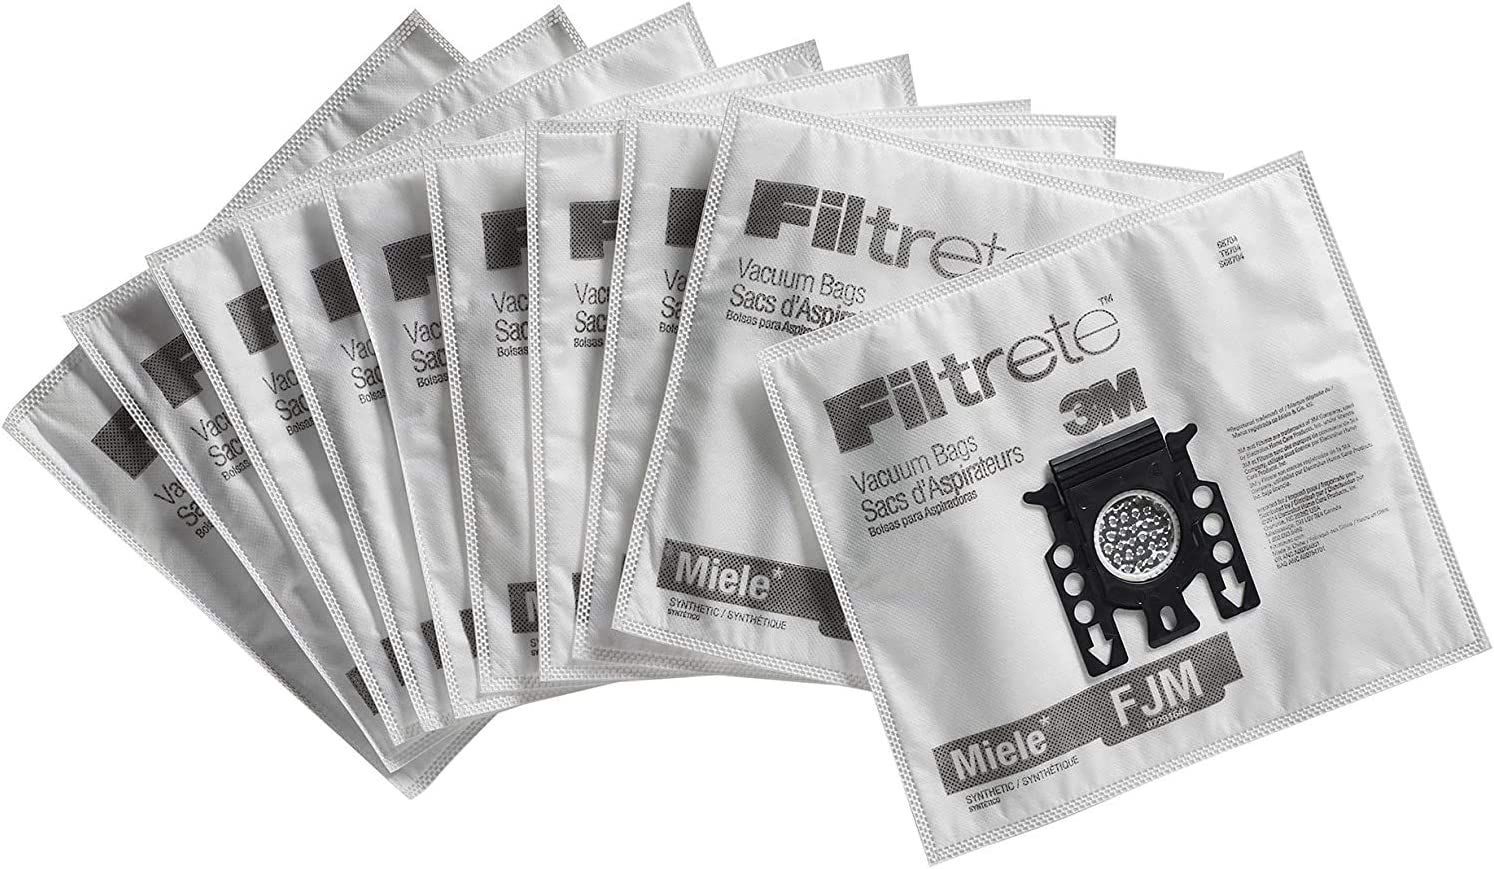 Miele FJM Vacuum Bags HEPA Style Micro Allergen Filtration Vacuum Cleaner Bags Compatible with Miele S400i-S456i, S5000-S5999, S600-S658, S800-S858 Series - 10 Pack 4 Filters by 3M Filtrete